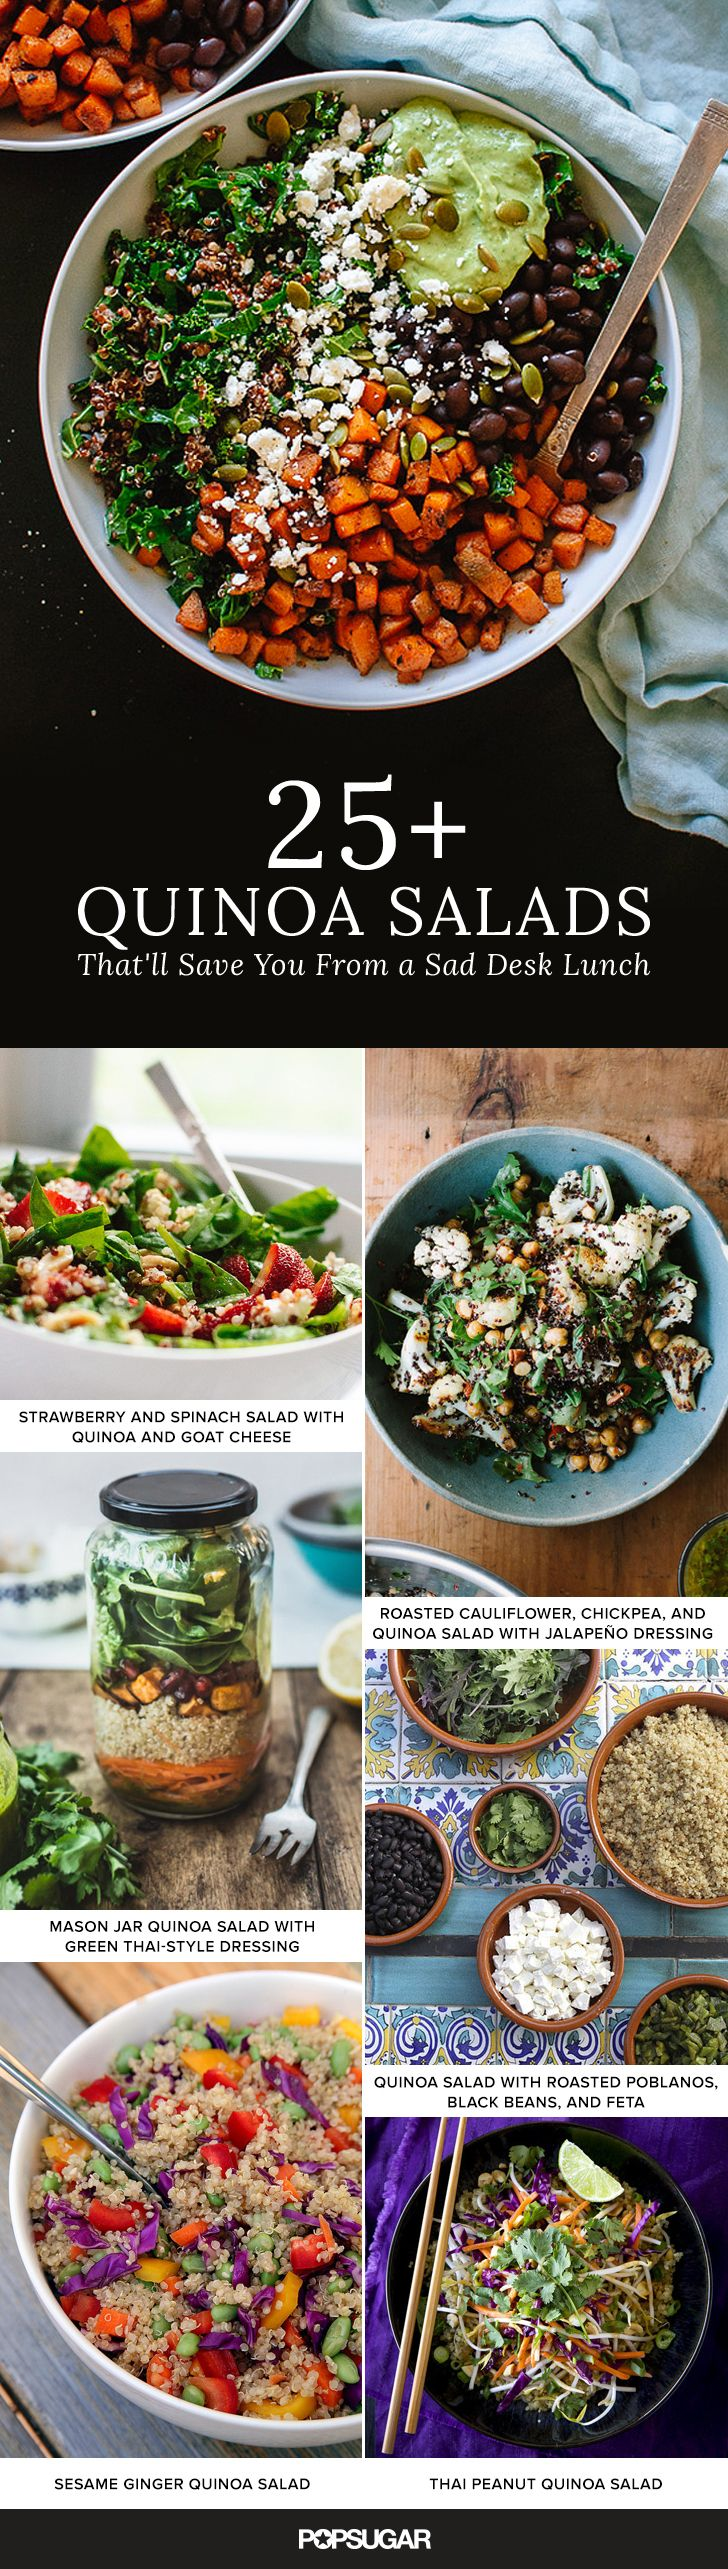 While lunchtime has much potential, in reality it's far too often a rotation of soggy sandwiches, flat-tasting soups, and wilted salads. Avoid midday meal disappointment by bringing one of these sturdy quinoa salads to work, school, or on a picnic.